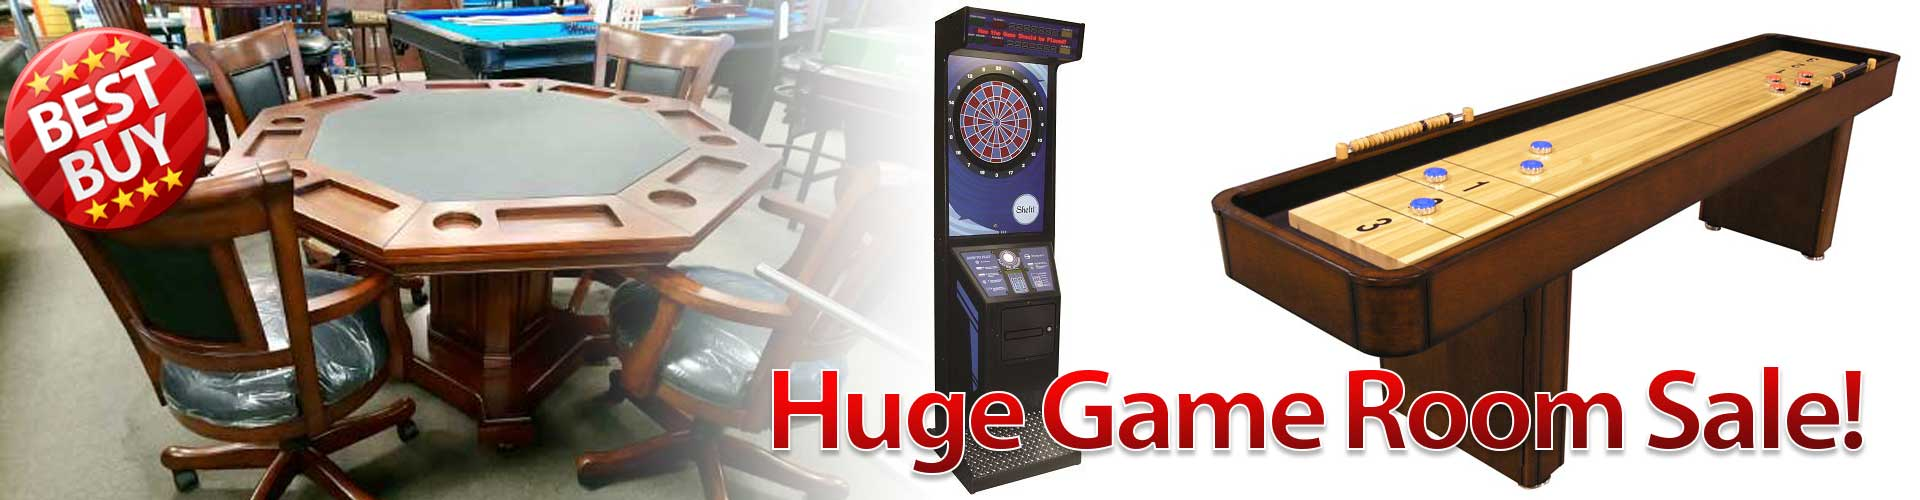 Game Room Sale